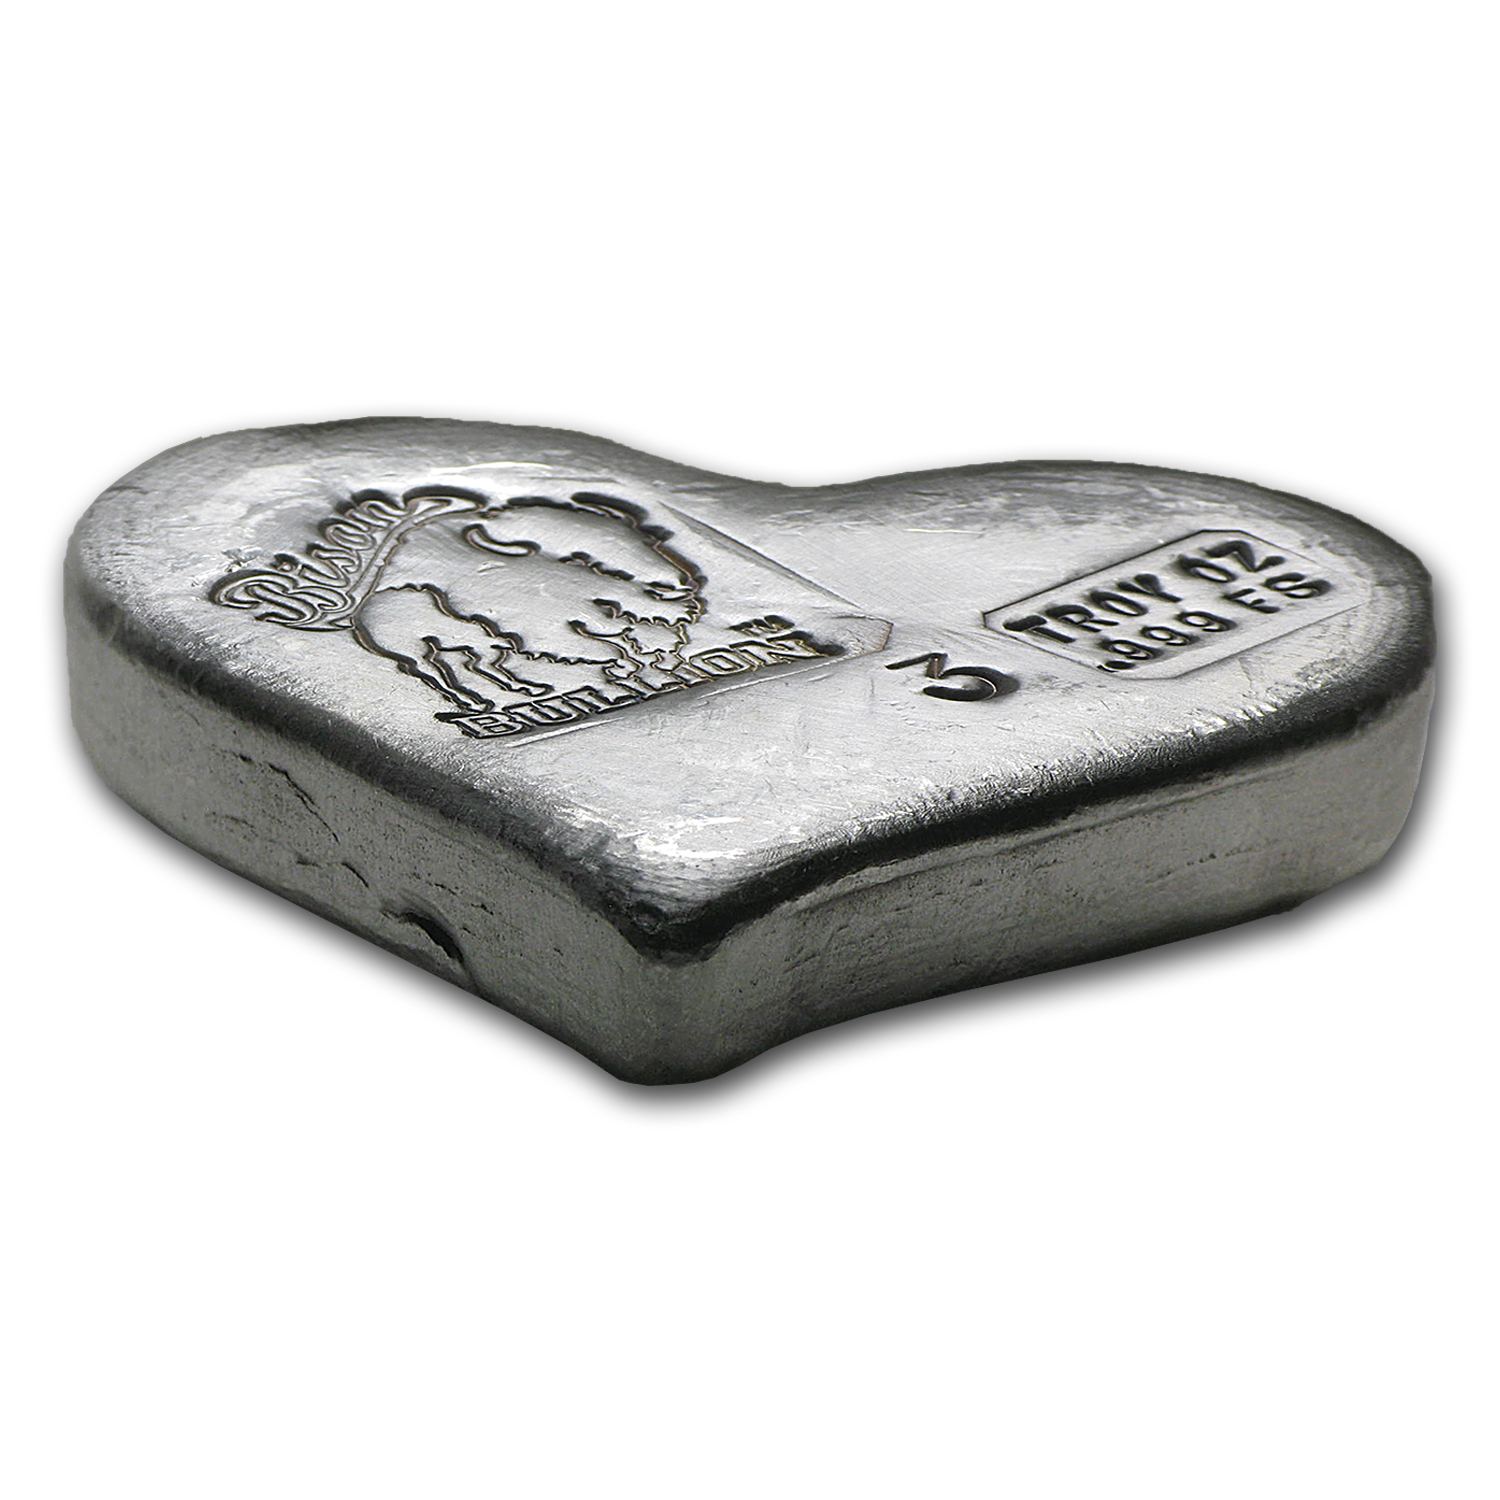 3 oz Silver Heart - Bison Bullion